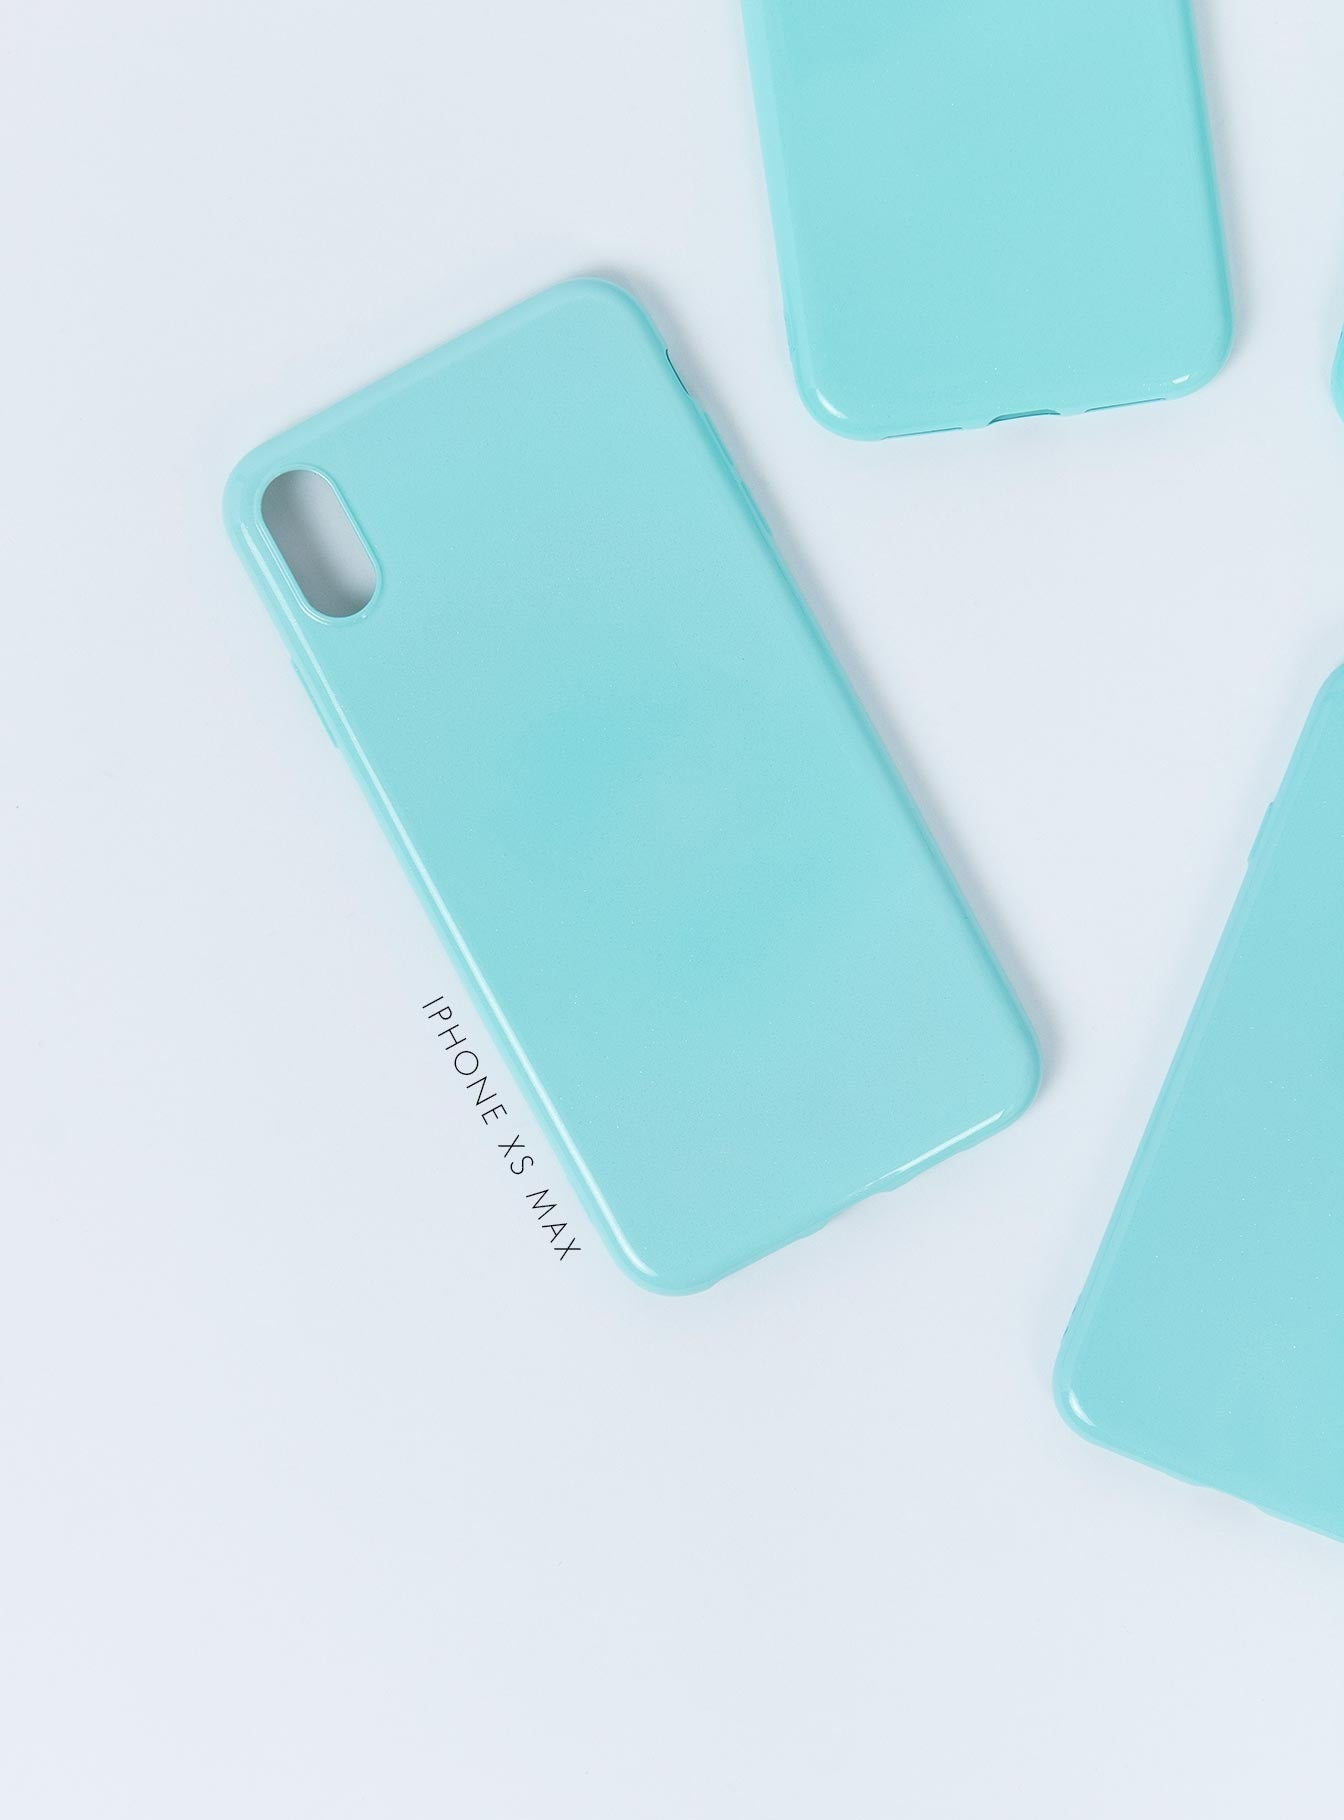 Precious Me Iphone Case Teal